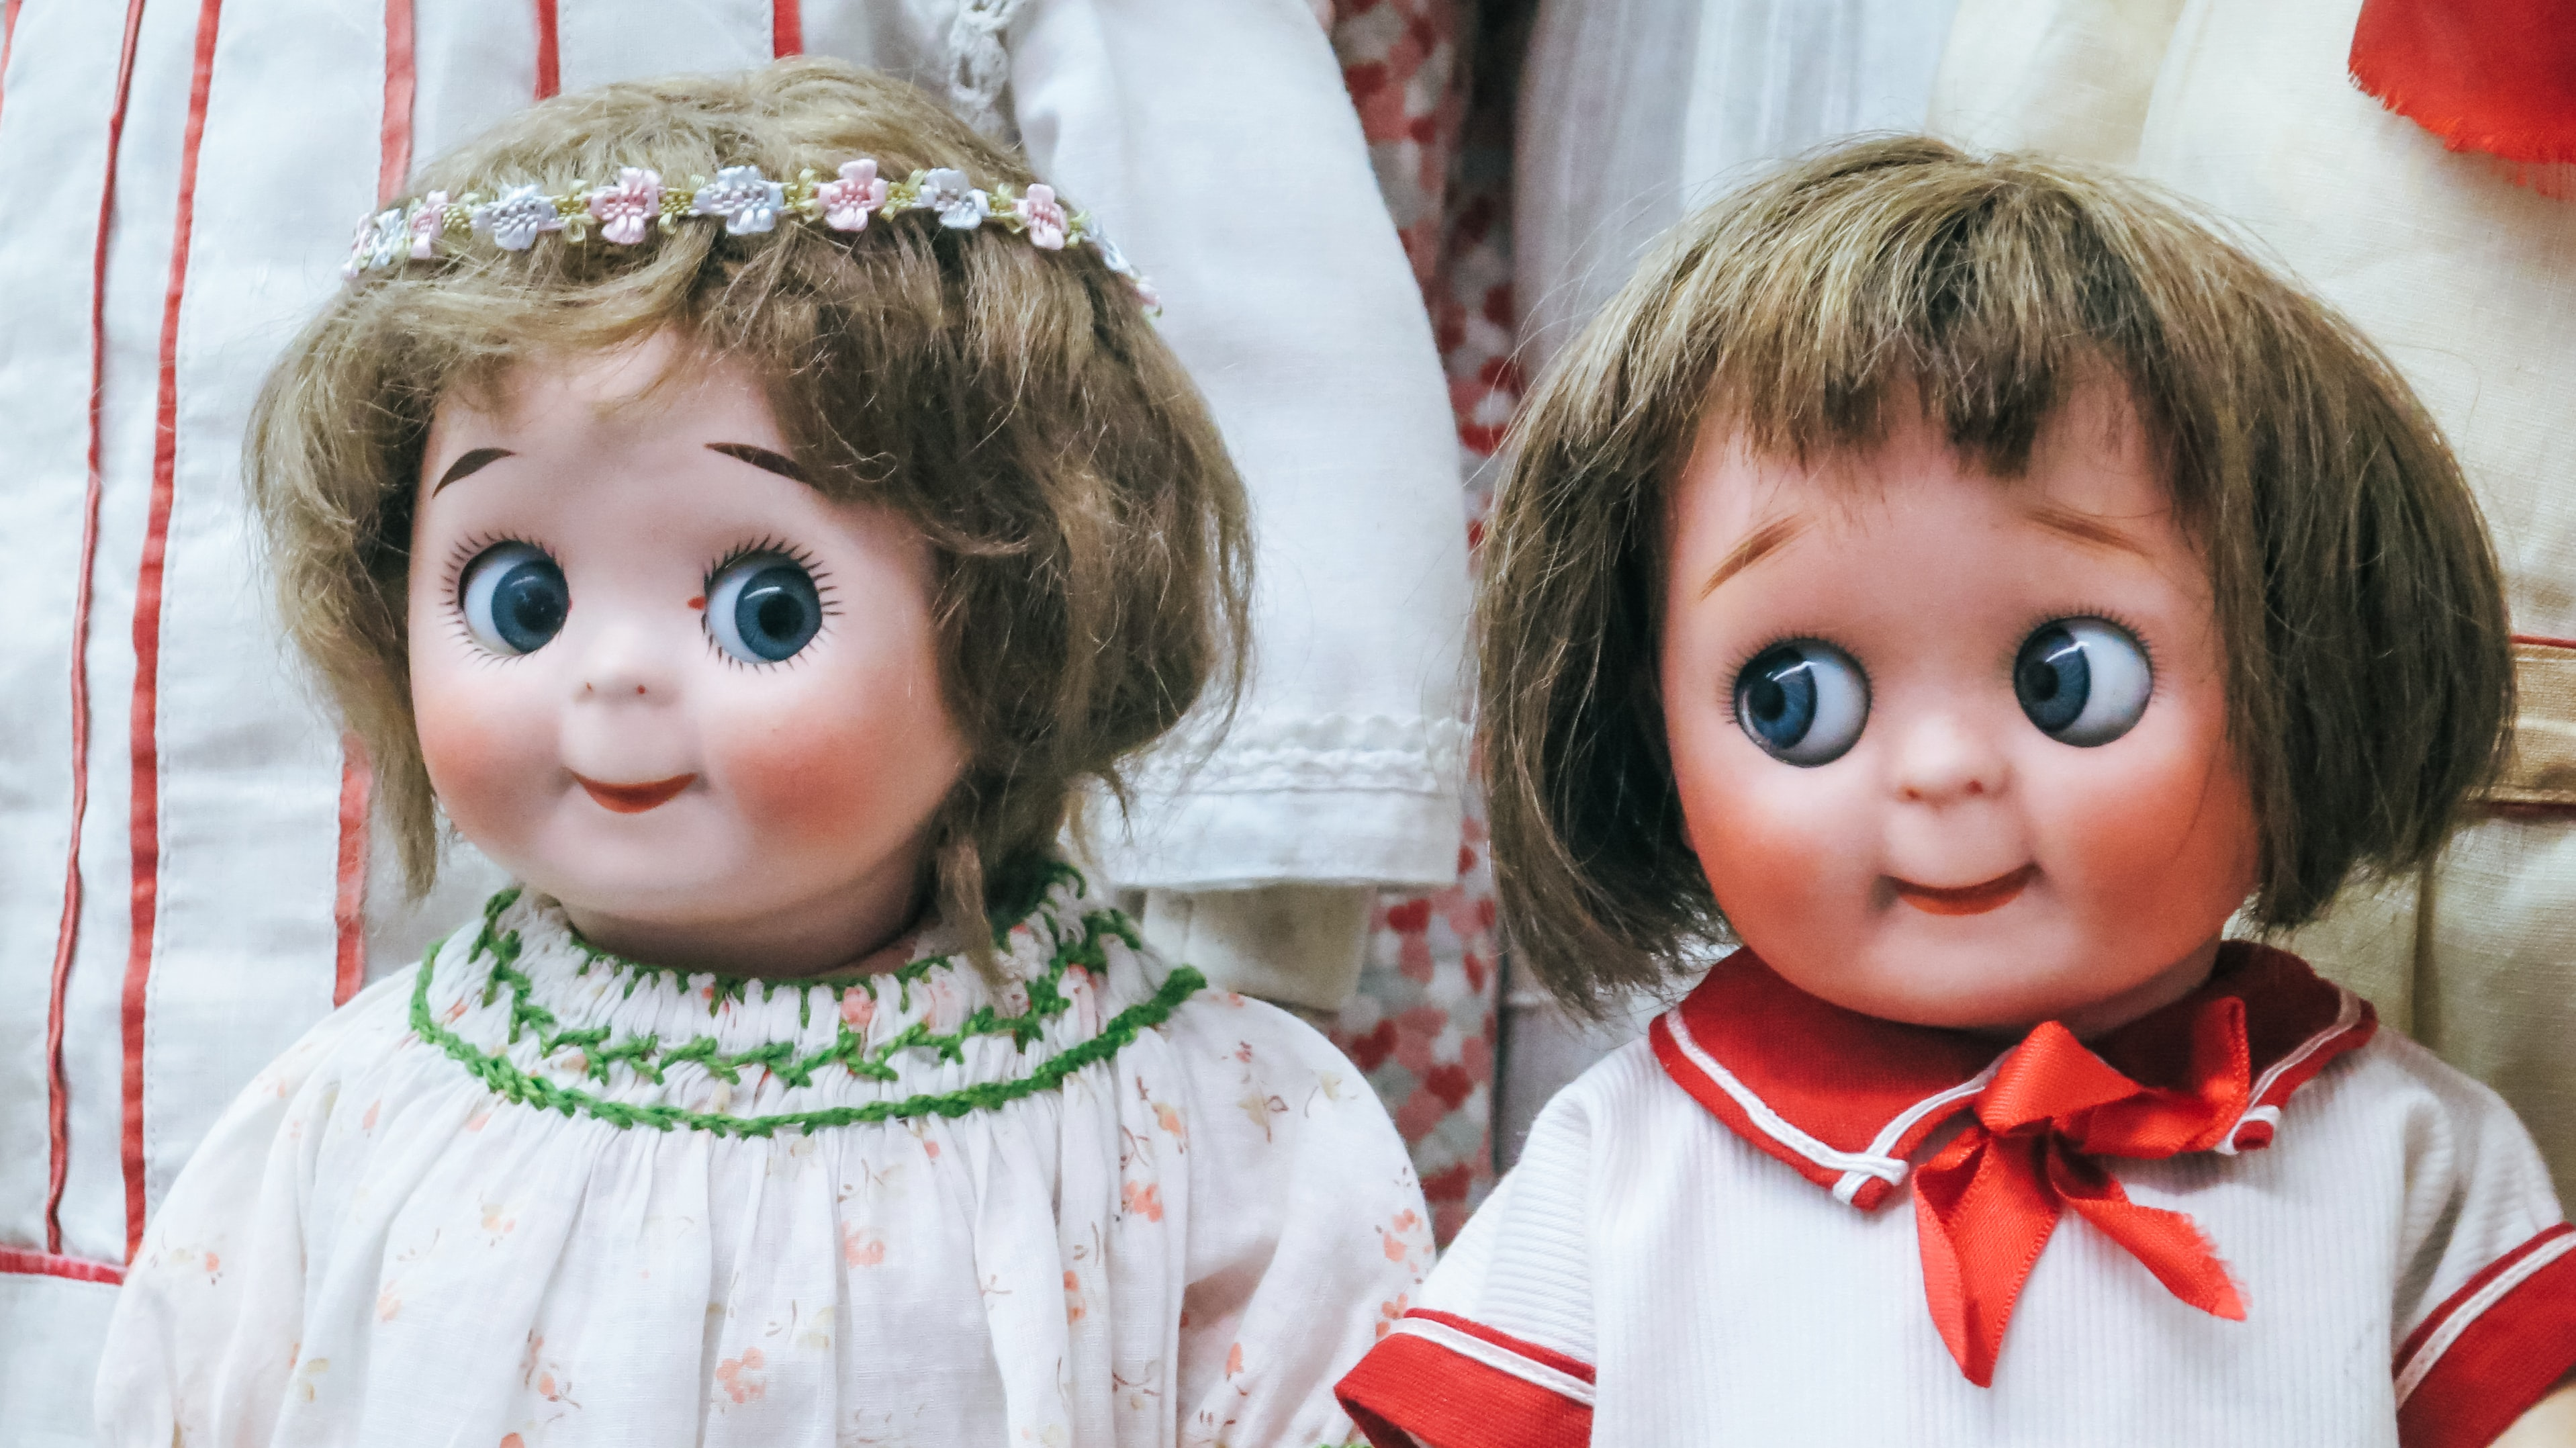 two female doll wearing white tops